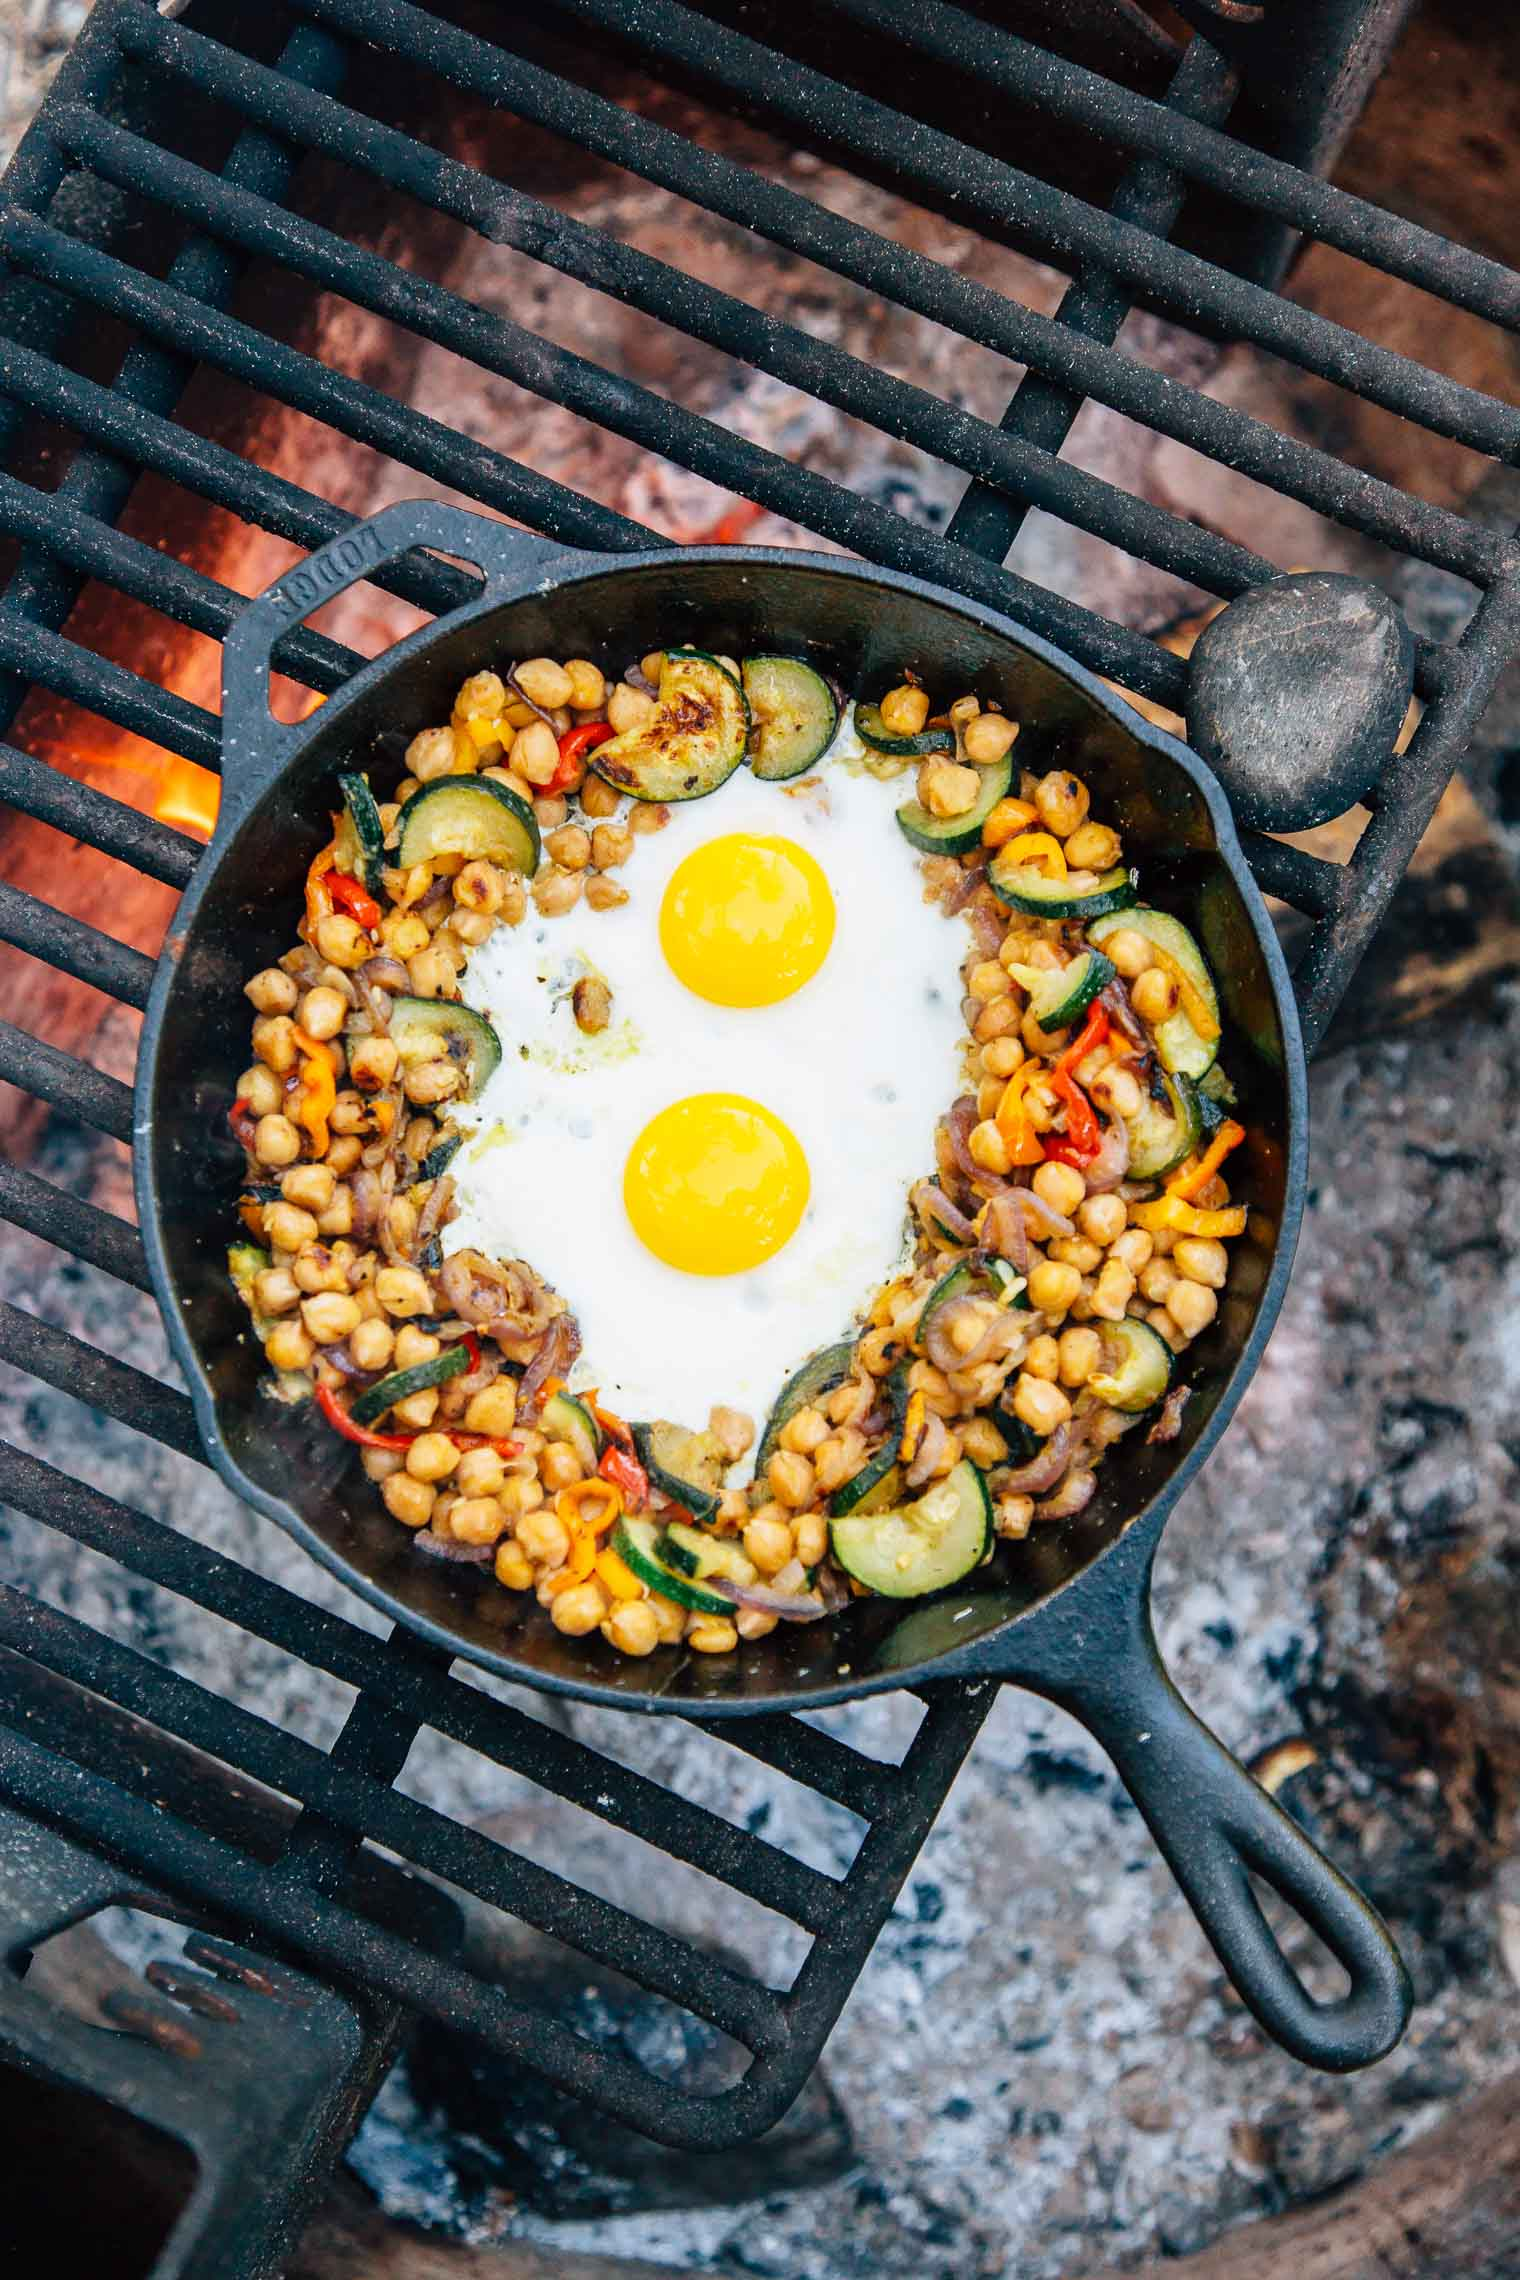 Chickpea breakfast hash with eggs in a cast iron skillet on a campfire.